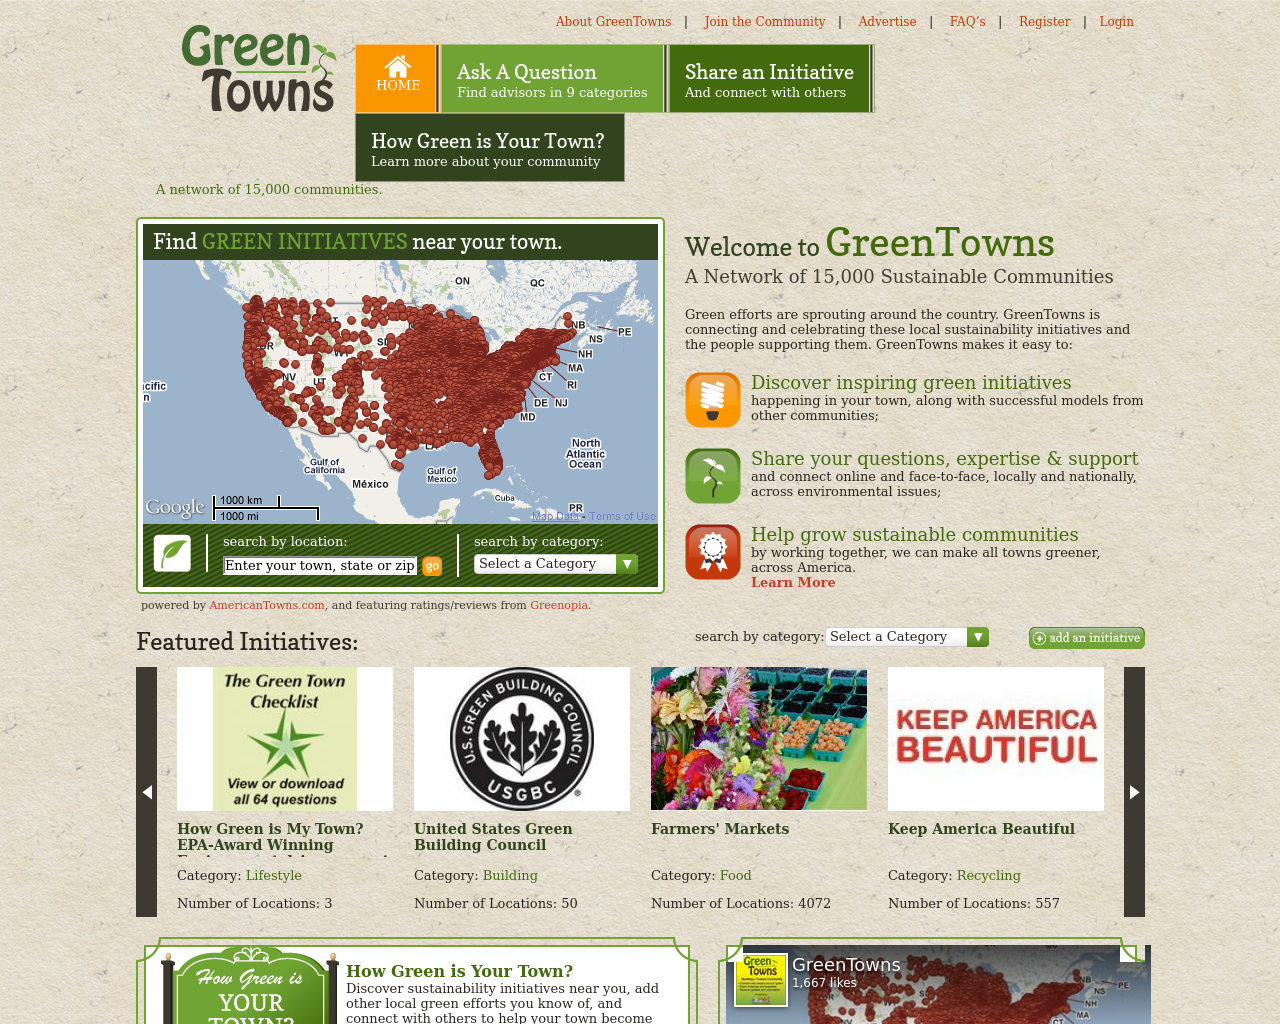 GreenTowns-Advertising-Reviews-Pricing